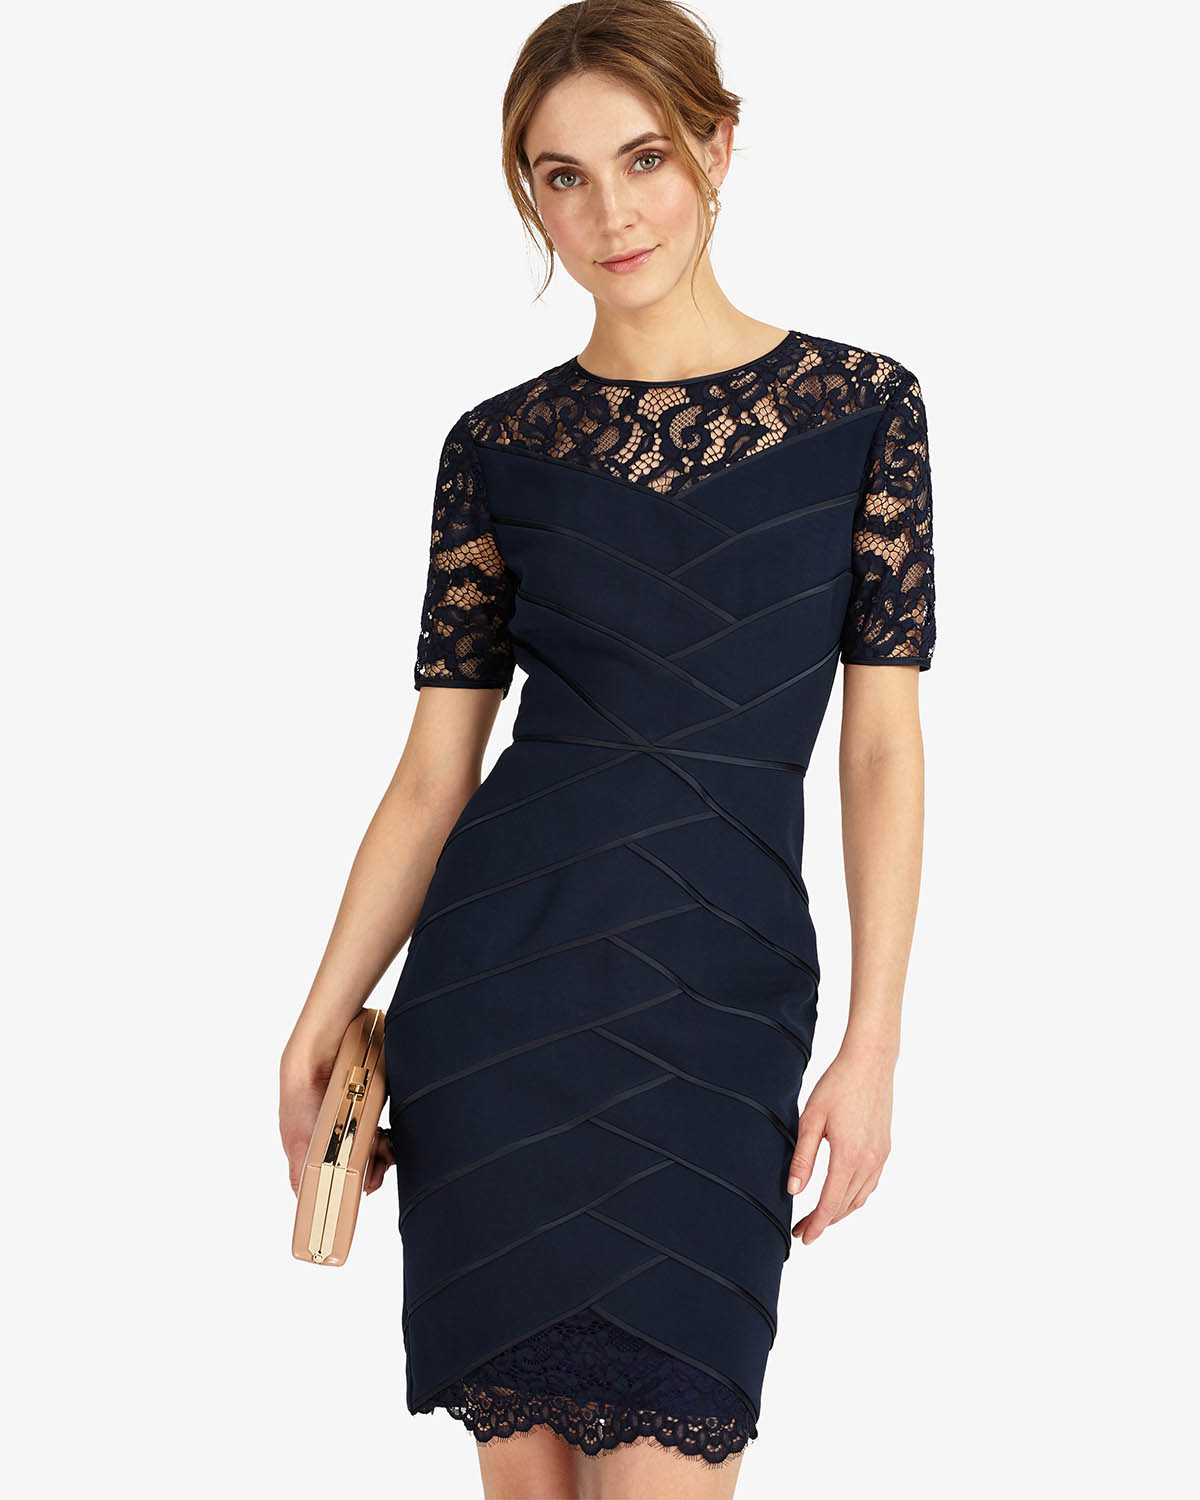 Zennor Dress From Phase Eight